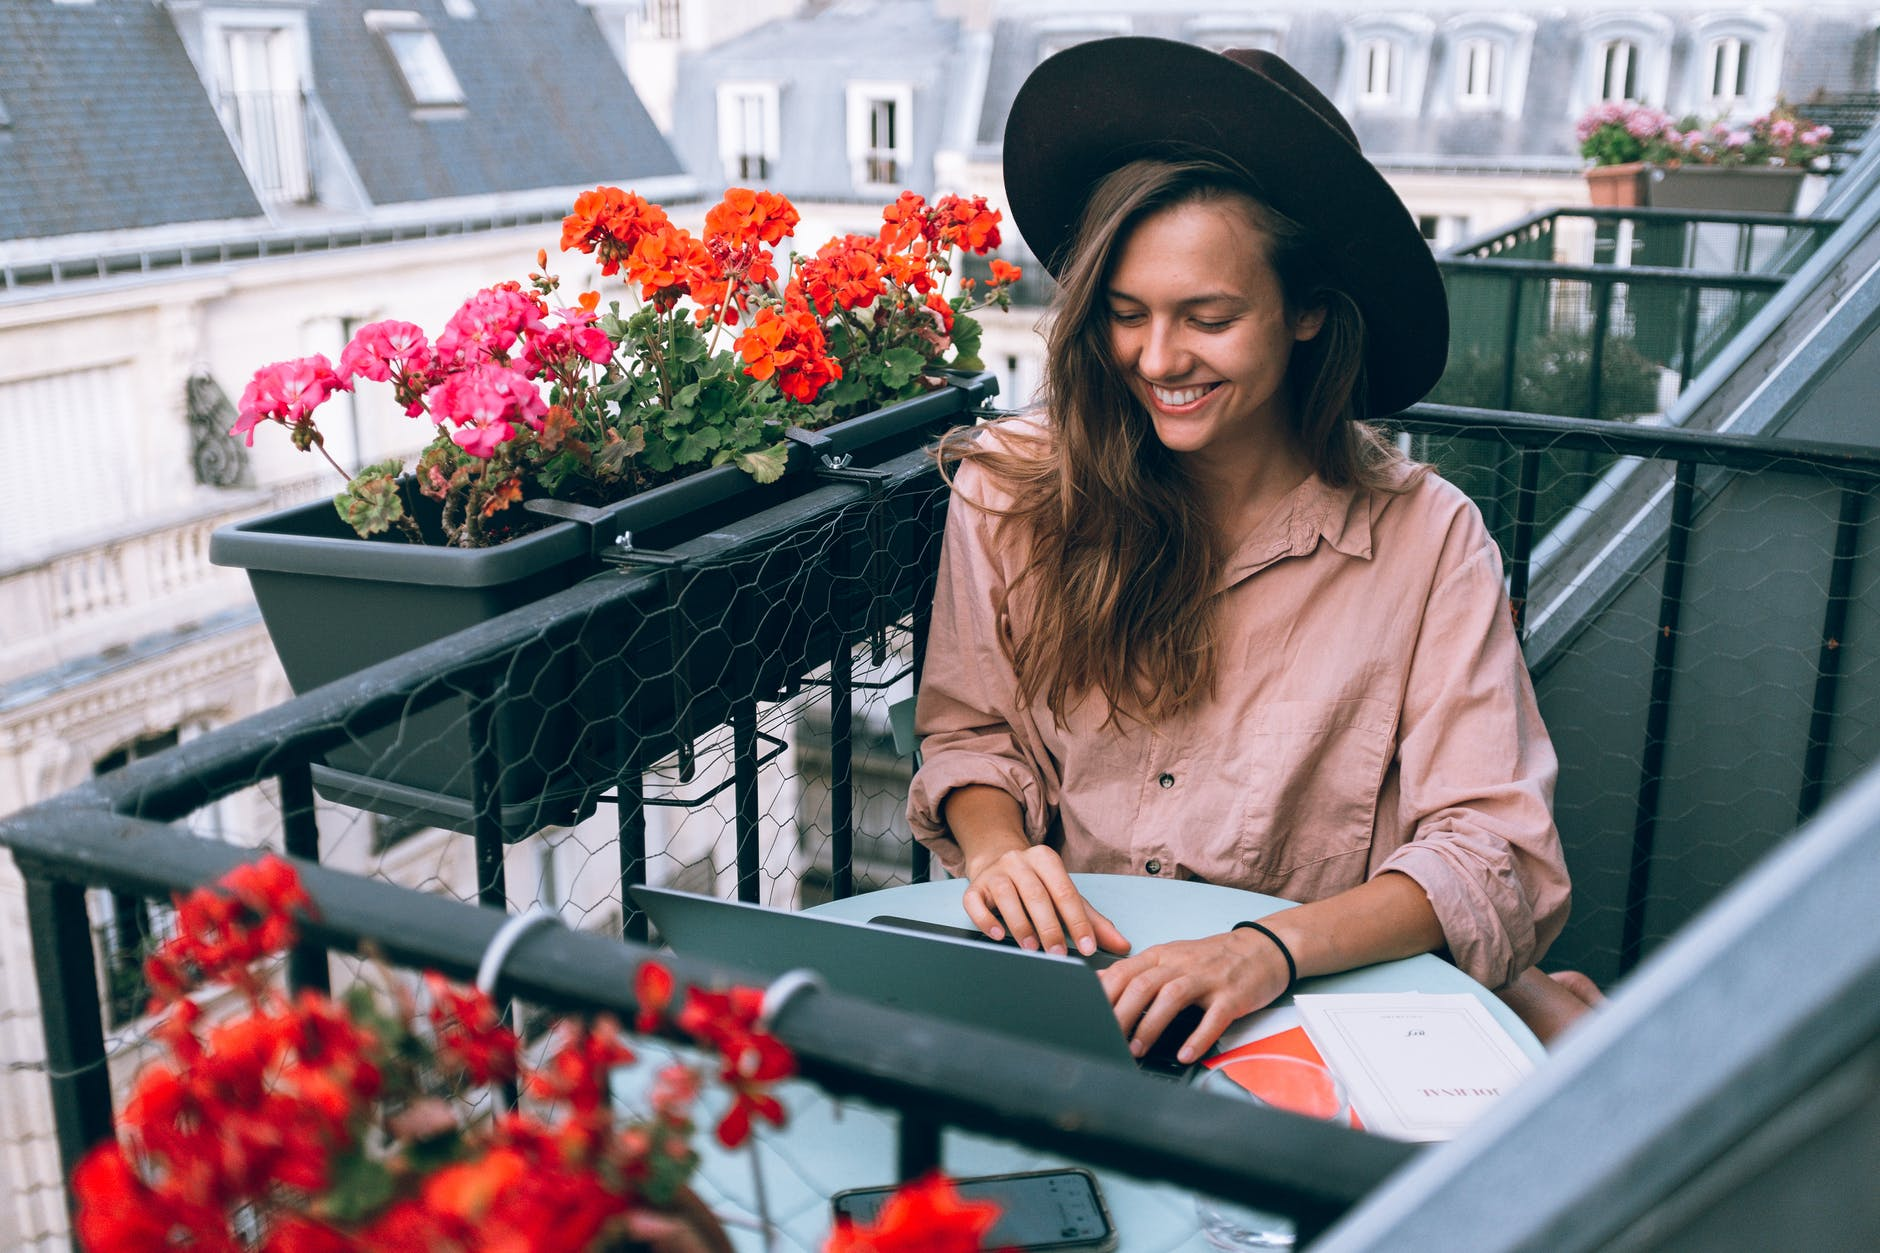 Woman using a laptop on a flower-filled balcony - learn SEO for Travel Bloggers and Businesses so you can work from anywhere and find success!